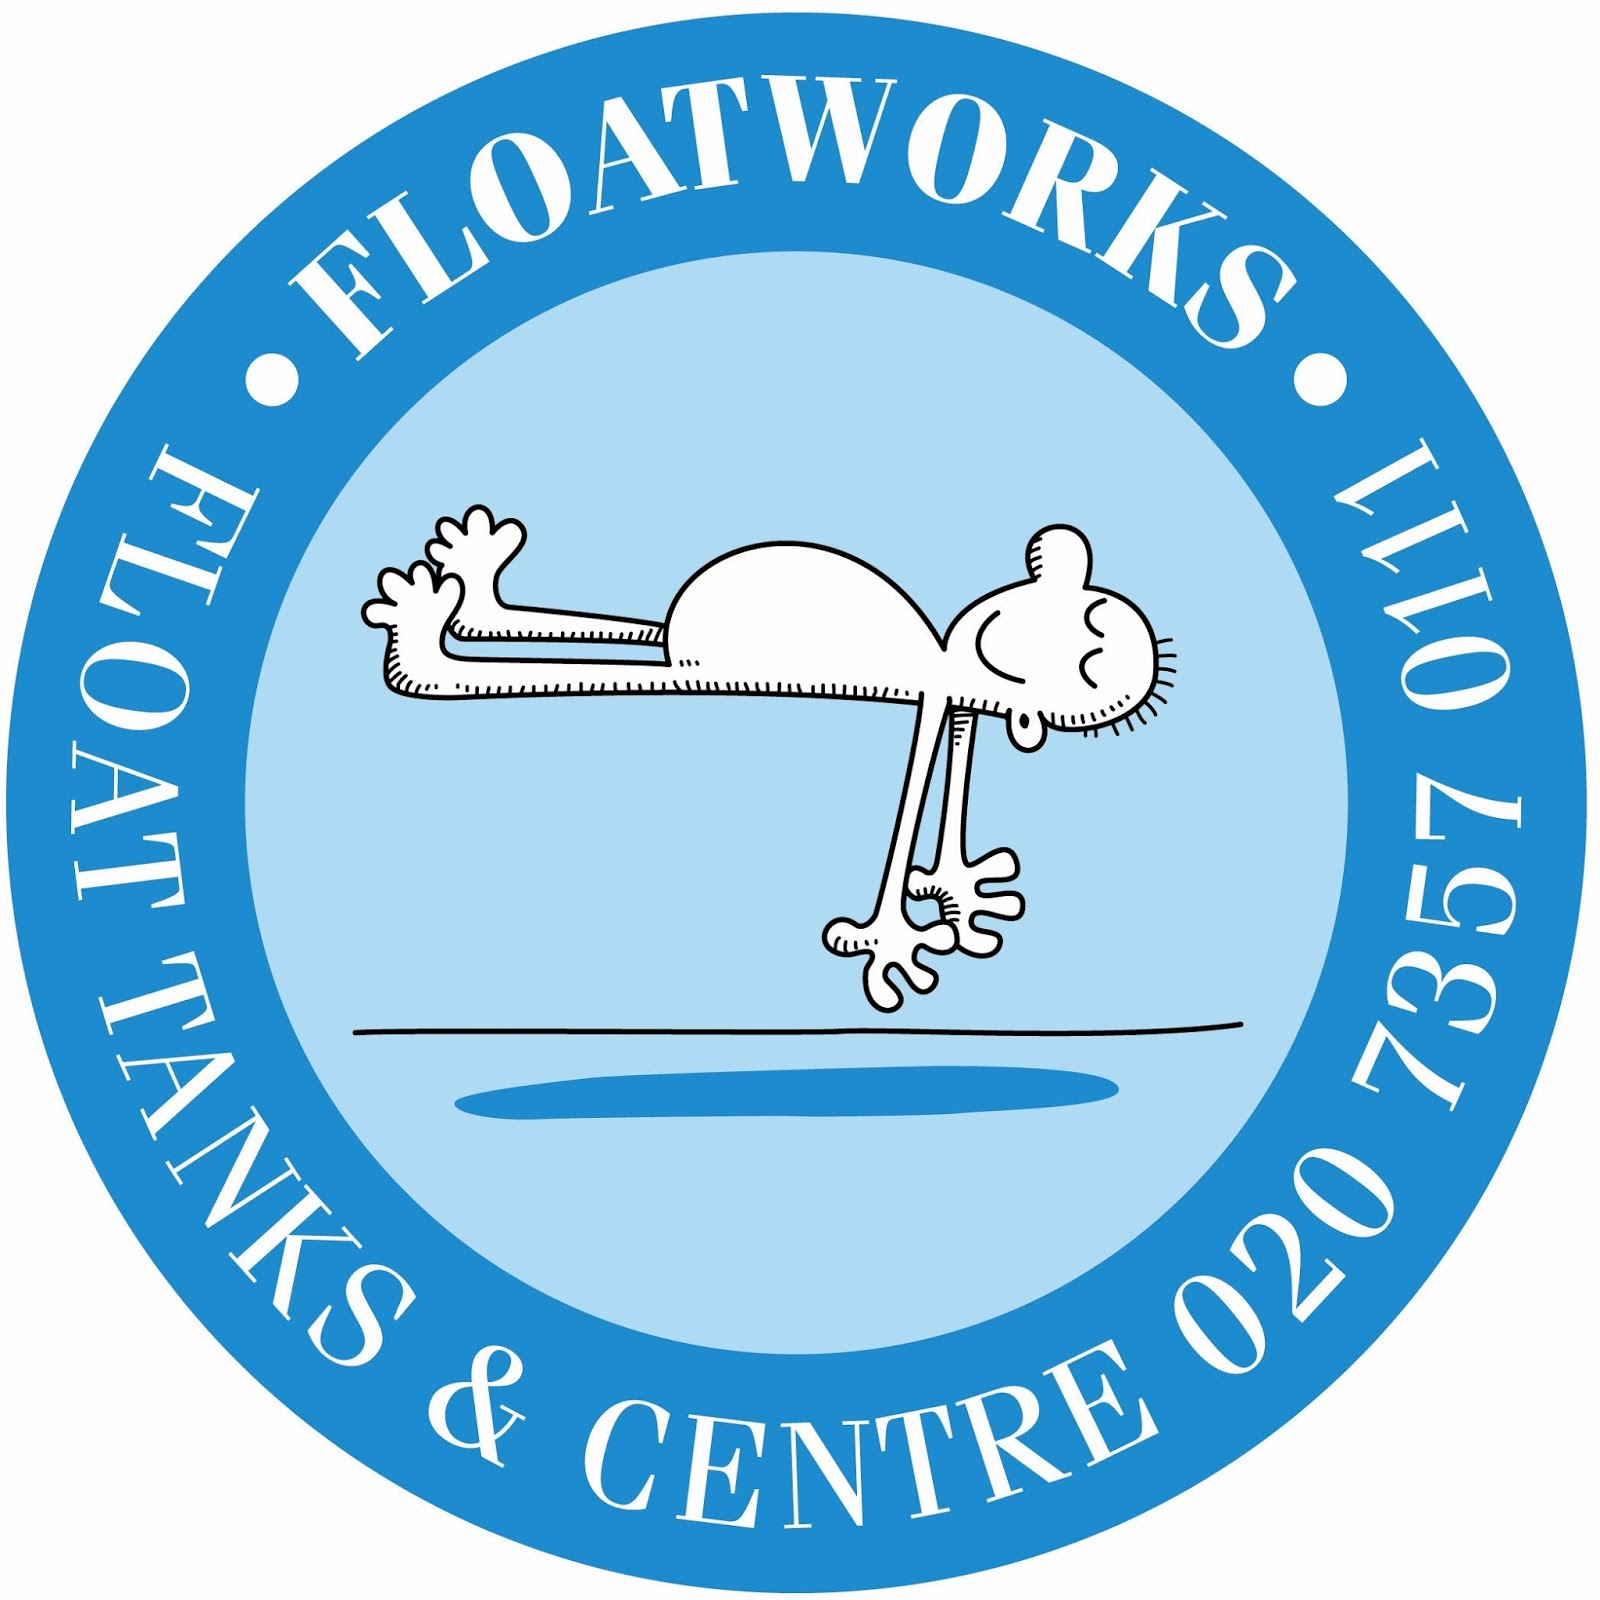 Floatworks, 32 Skylines Village, Limeharbour  London, E14 9TS  Nearest Station: South Quay DLR